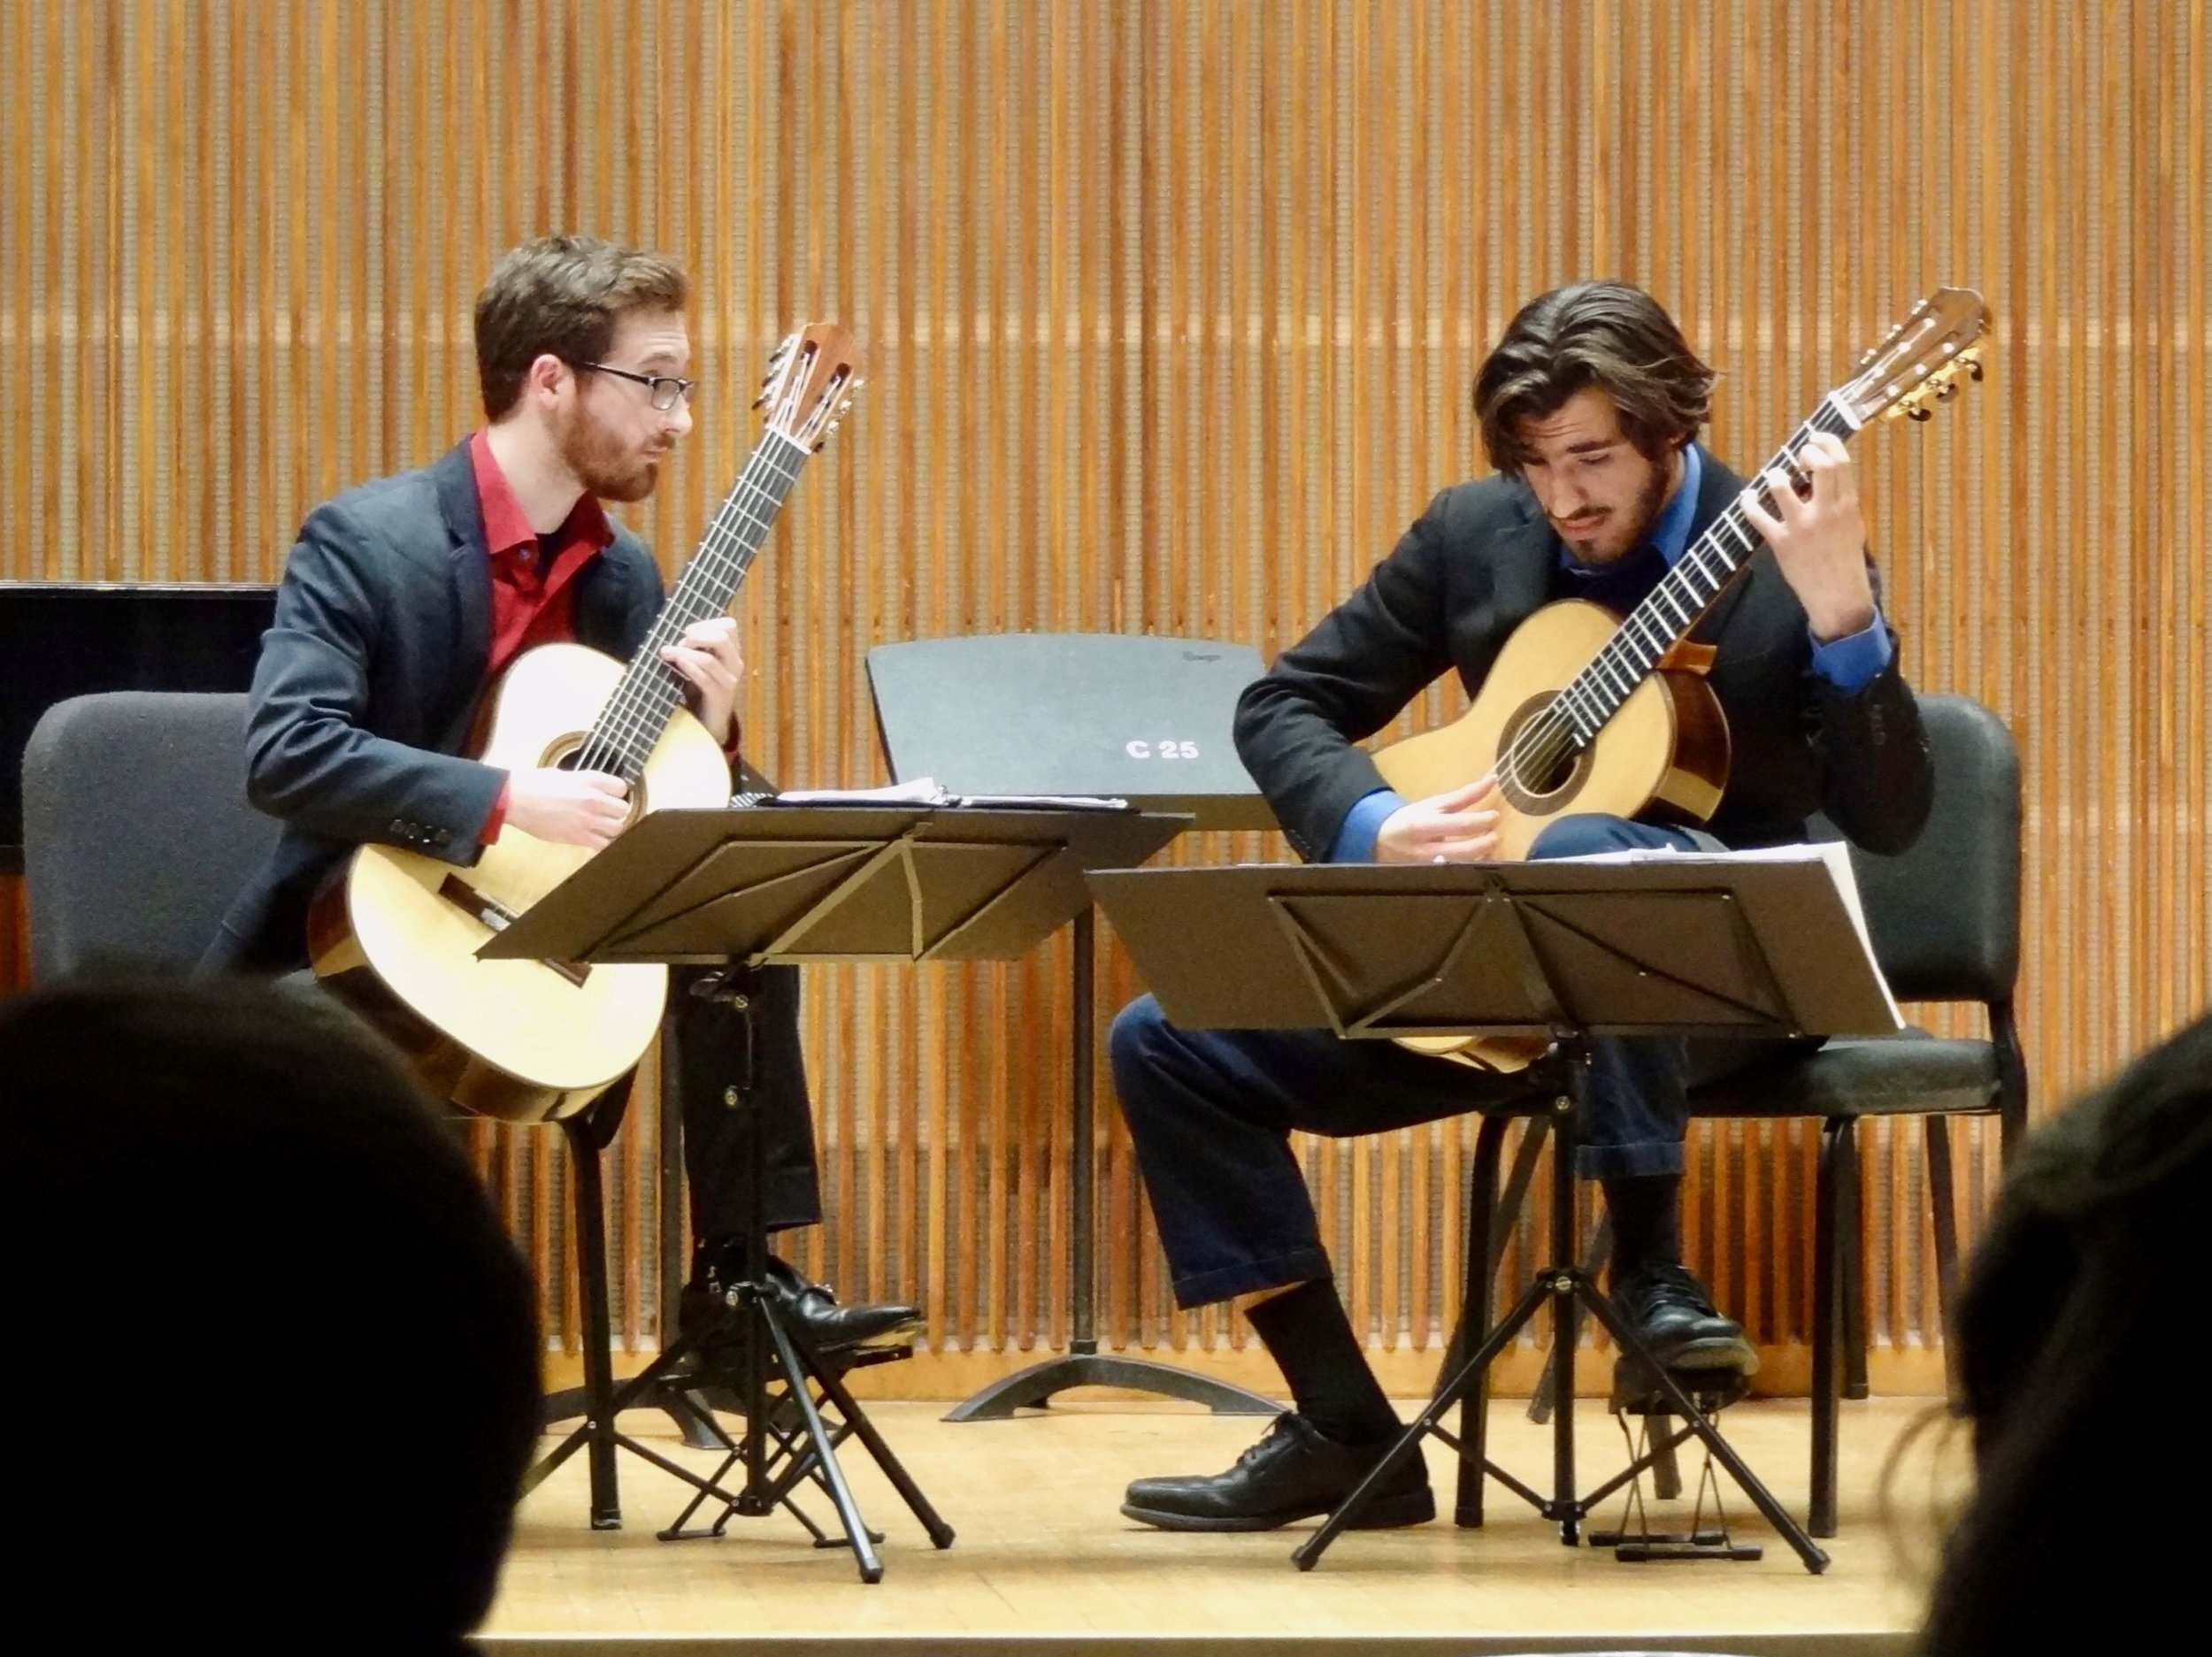 In a remarkably virtuosic duo performance, Brian King and Mohit Dubey play Brian's arrangement of Tchaikovsky string quartet music